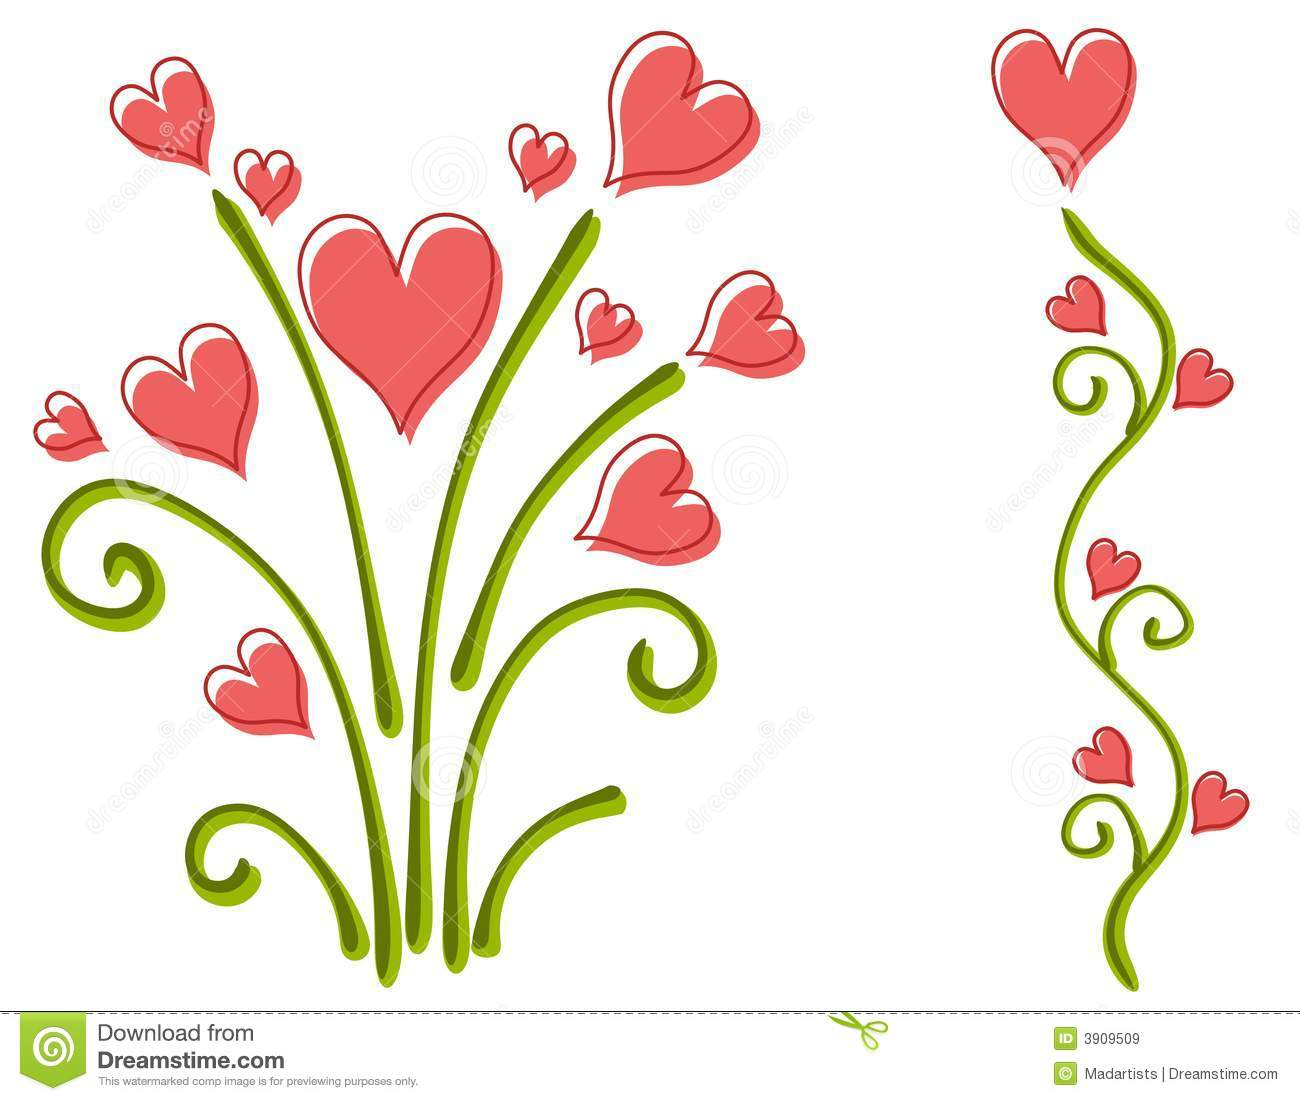 Clipart flowers and hearts jpg freeuse download Hearts And Flowers Clipart - Clipart Kid jpg freeuse download